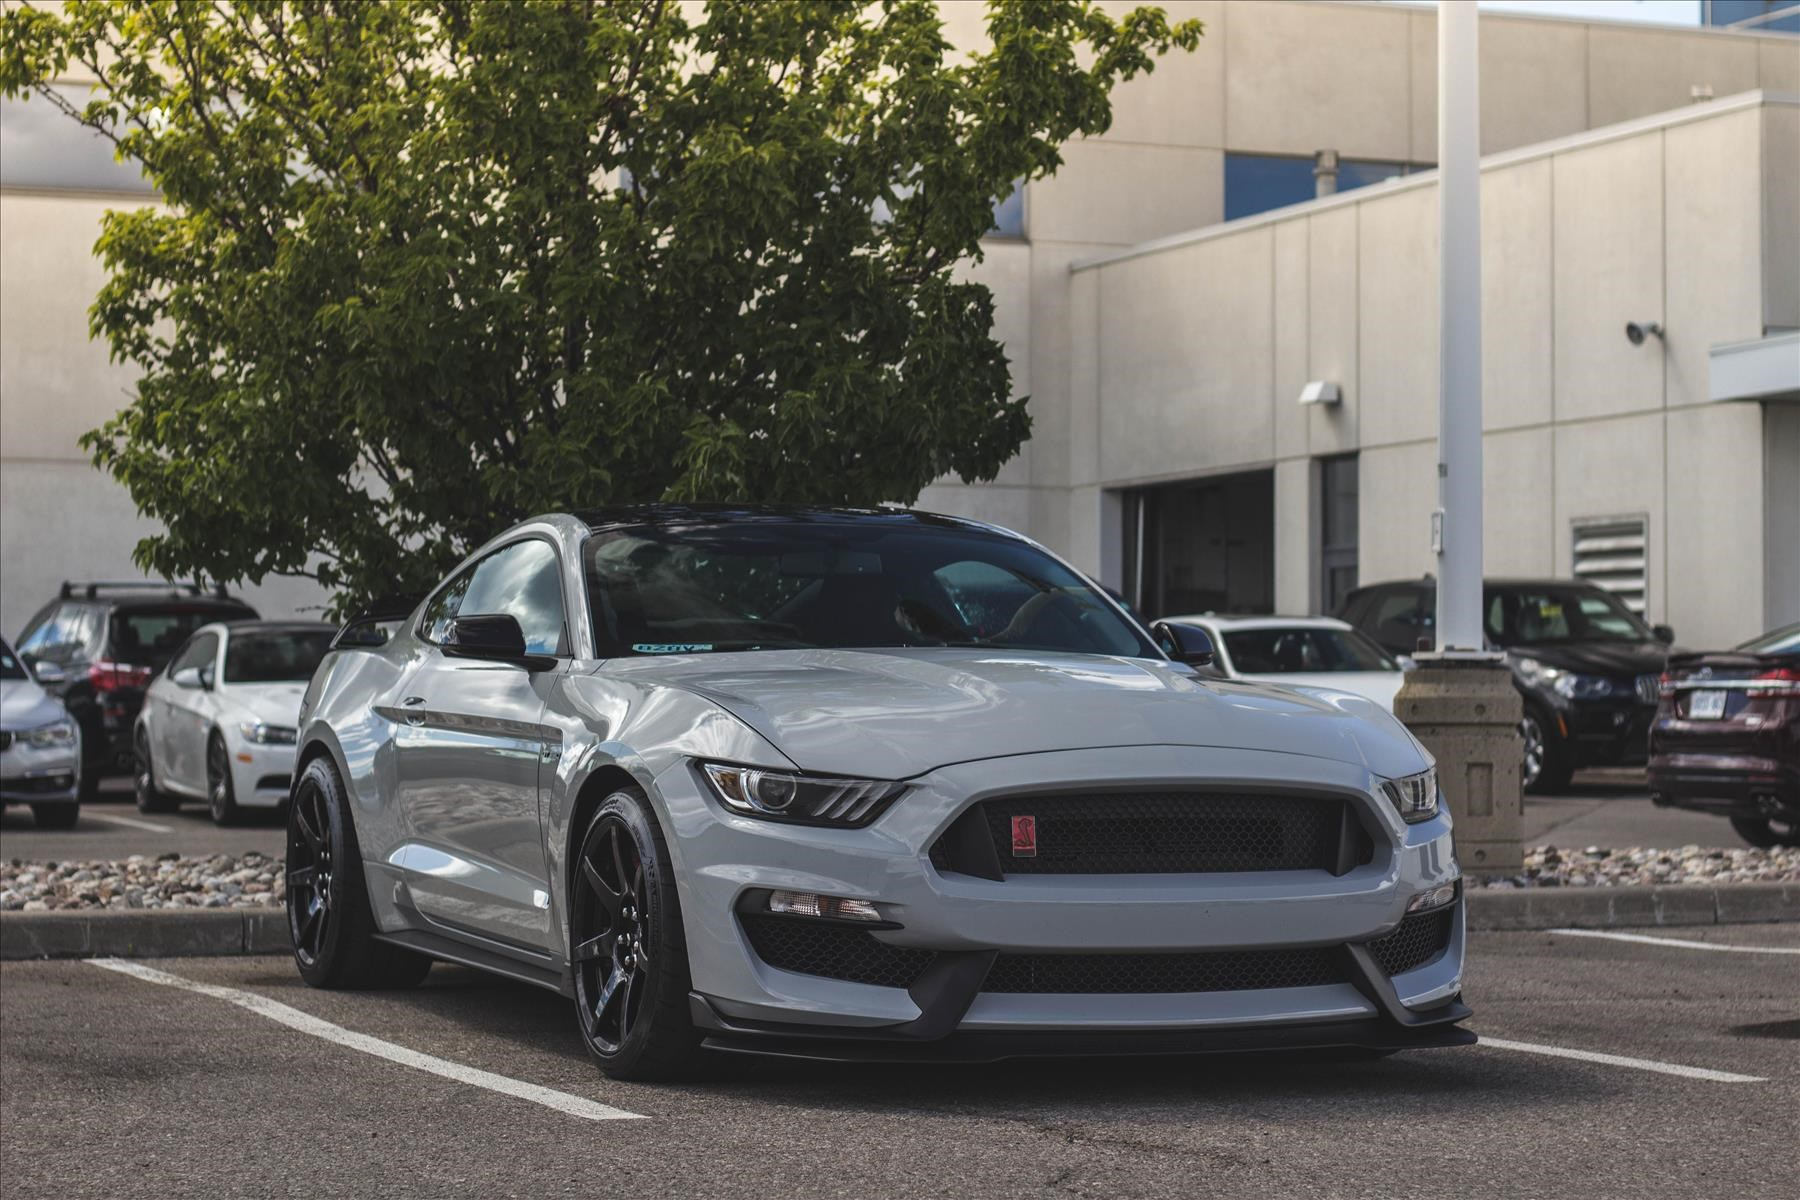 The Ultimate Track Weapon Ford Mustang Shelby GT350R